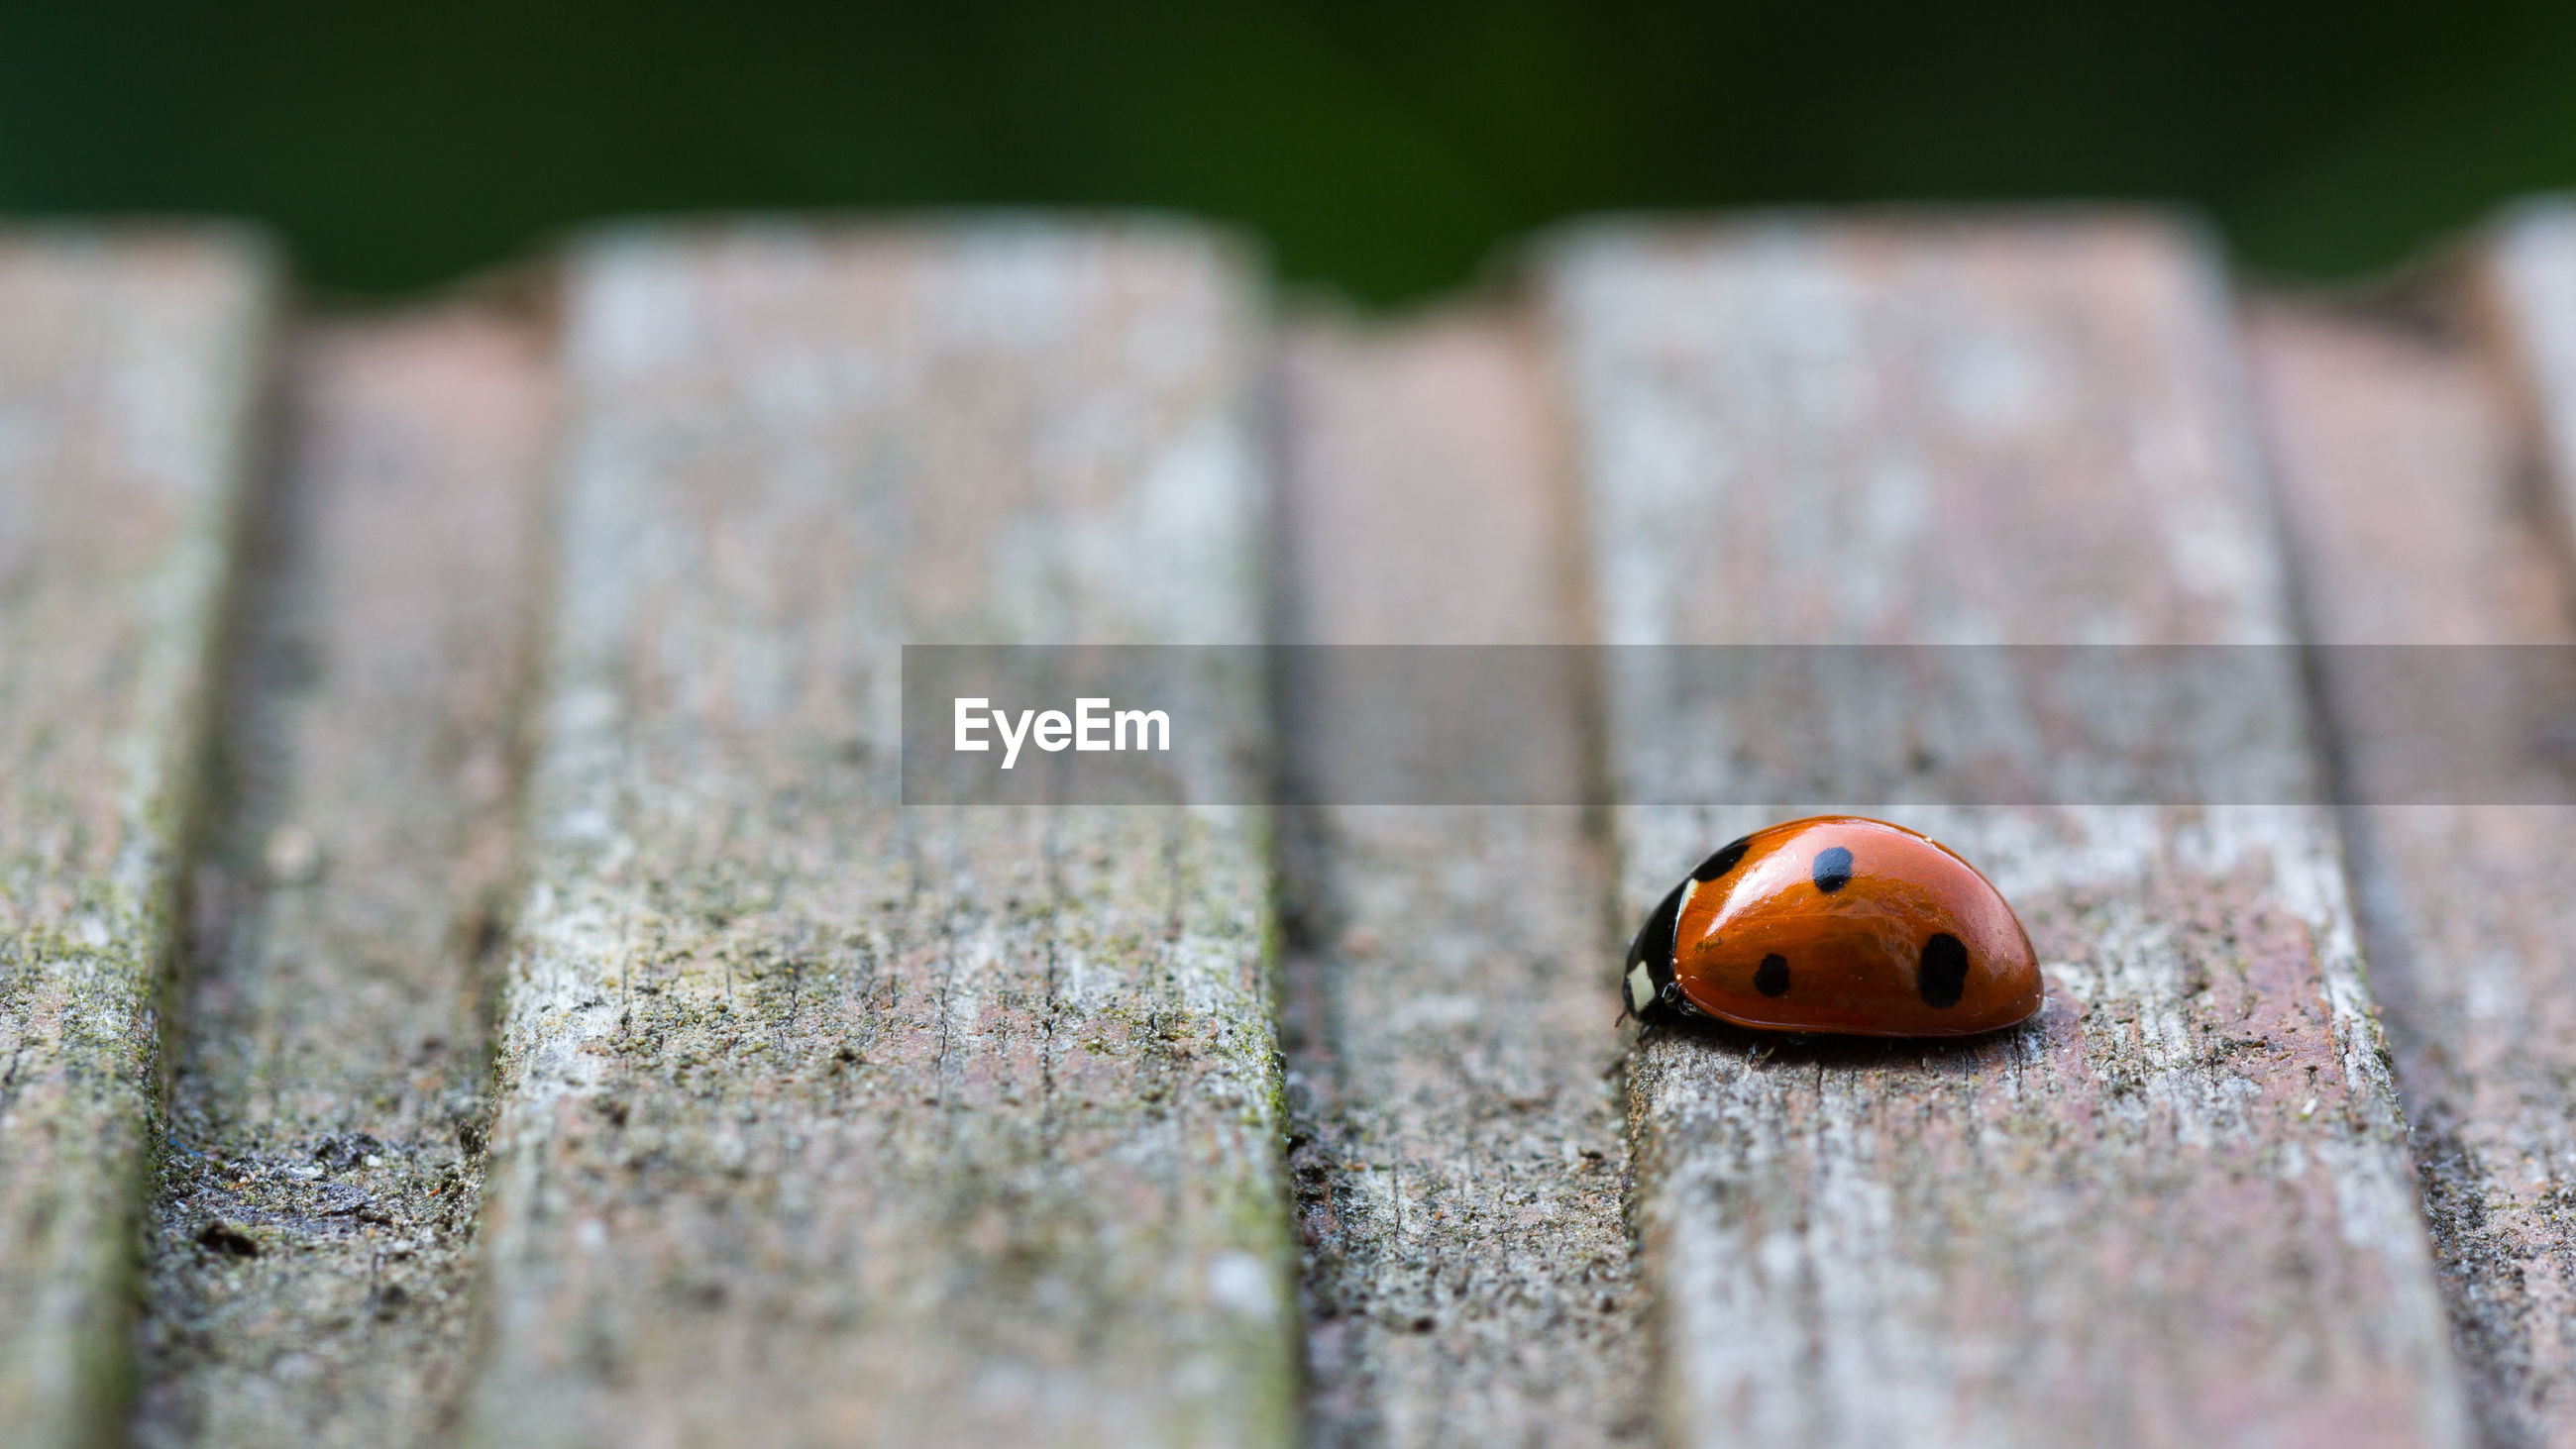 ladybug, beetle, insect, close-up, macro photography, animal themes, animal, animal wildlife, green, wood, selective focus, one animal, no people, spotted, nature, leaf, wildlife, outdoors, day, plant